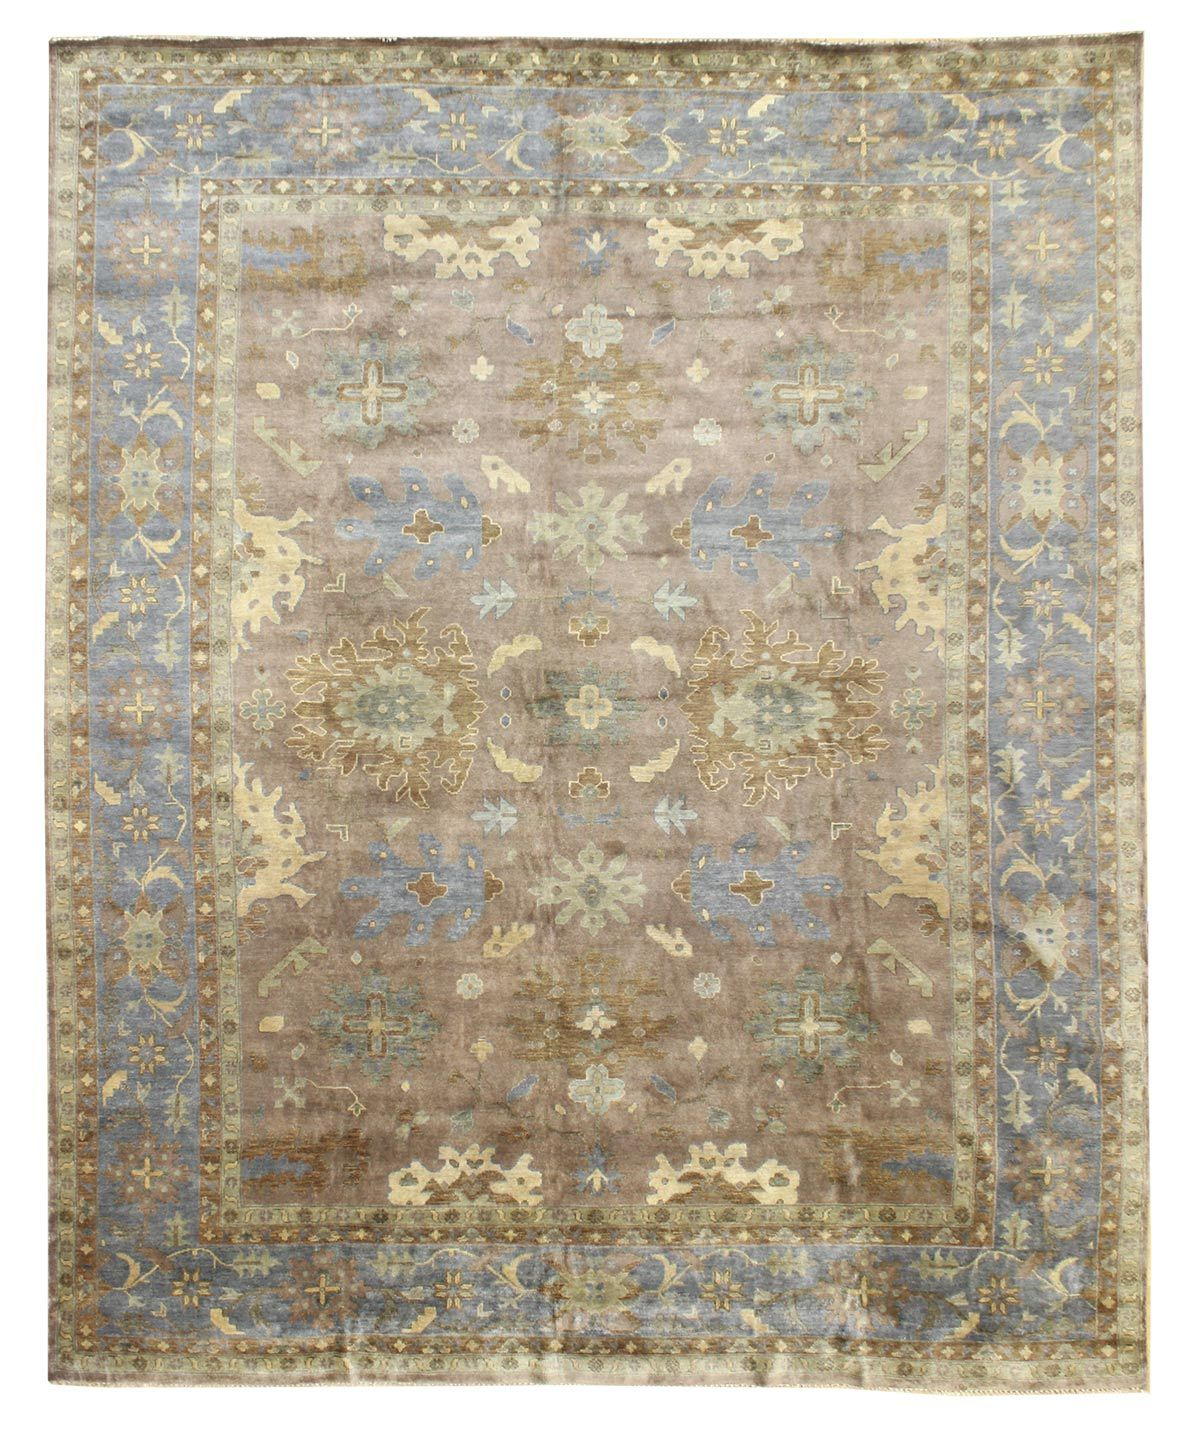 Best Value Traditional Rugs Gallery Oushak Design Rug Hand Knotted In India